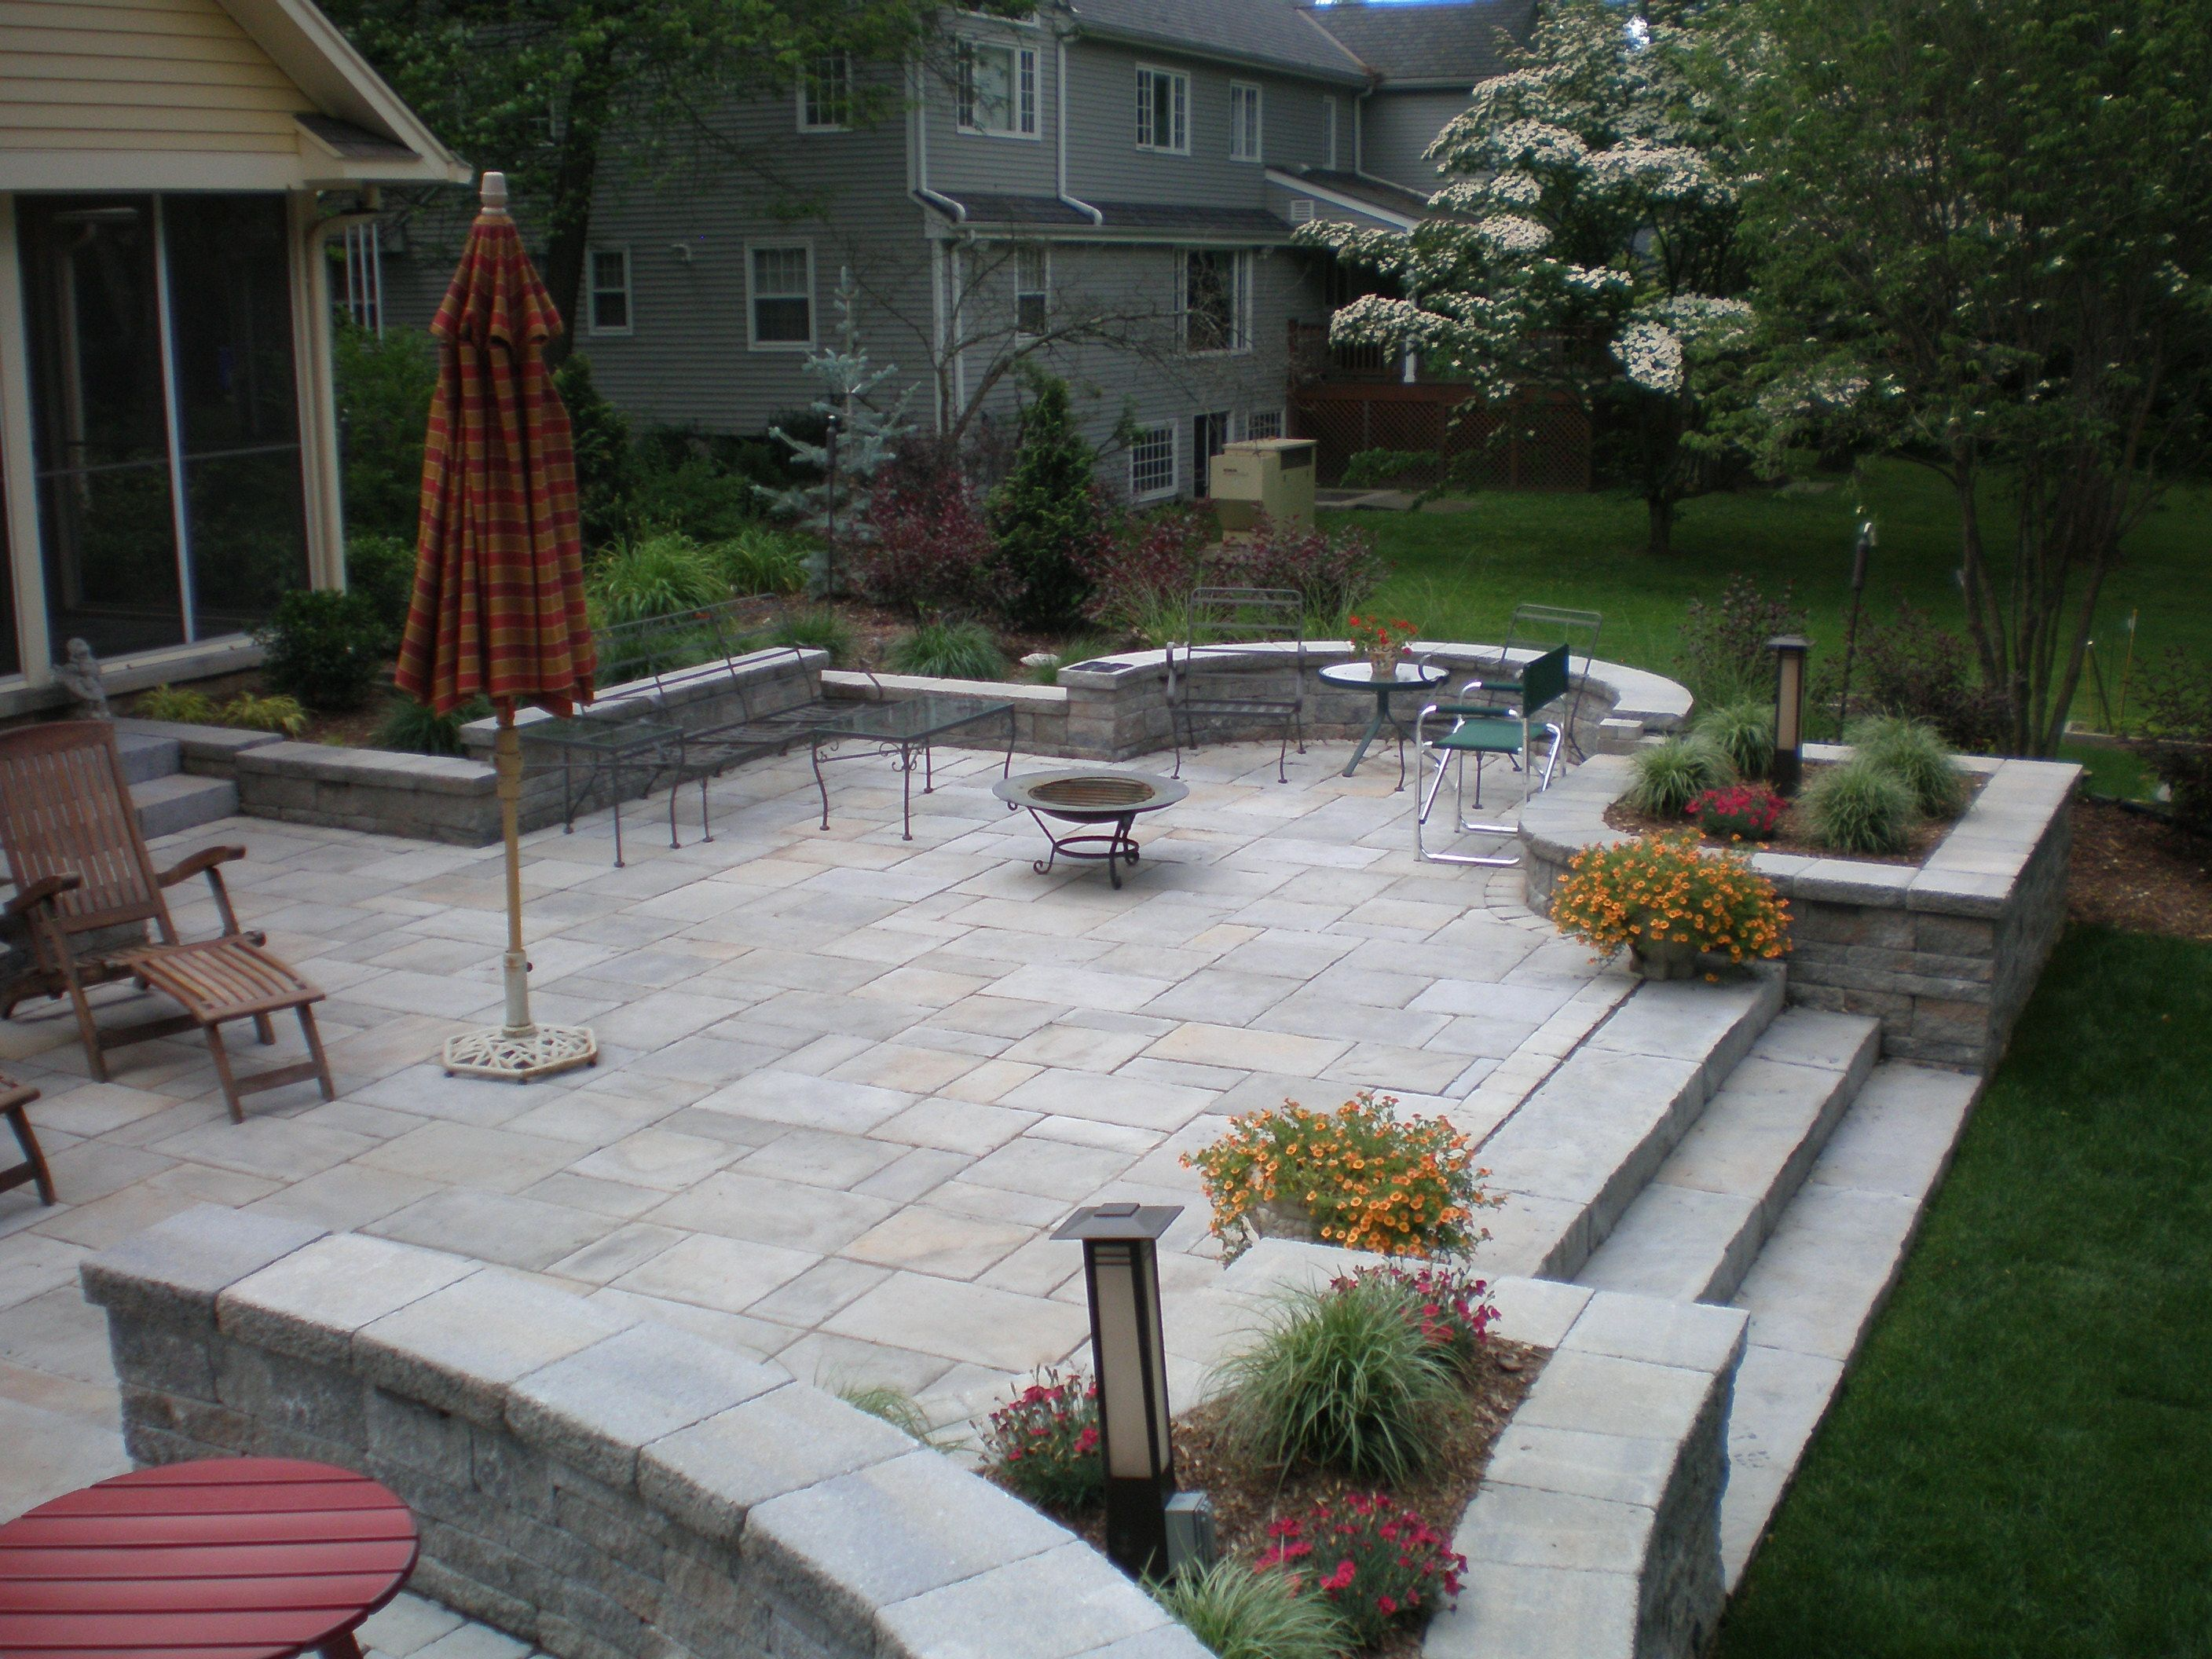 Raised Patio | Patio, Patio design, Backyard patio designs on Raised Concrete Patio Ideas id=21668